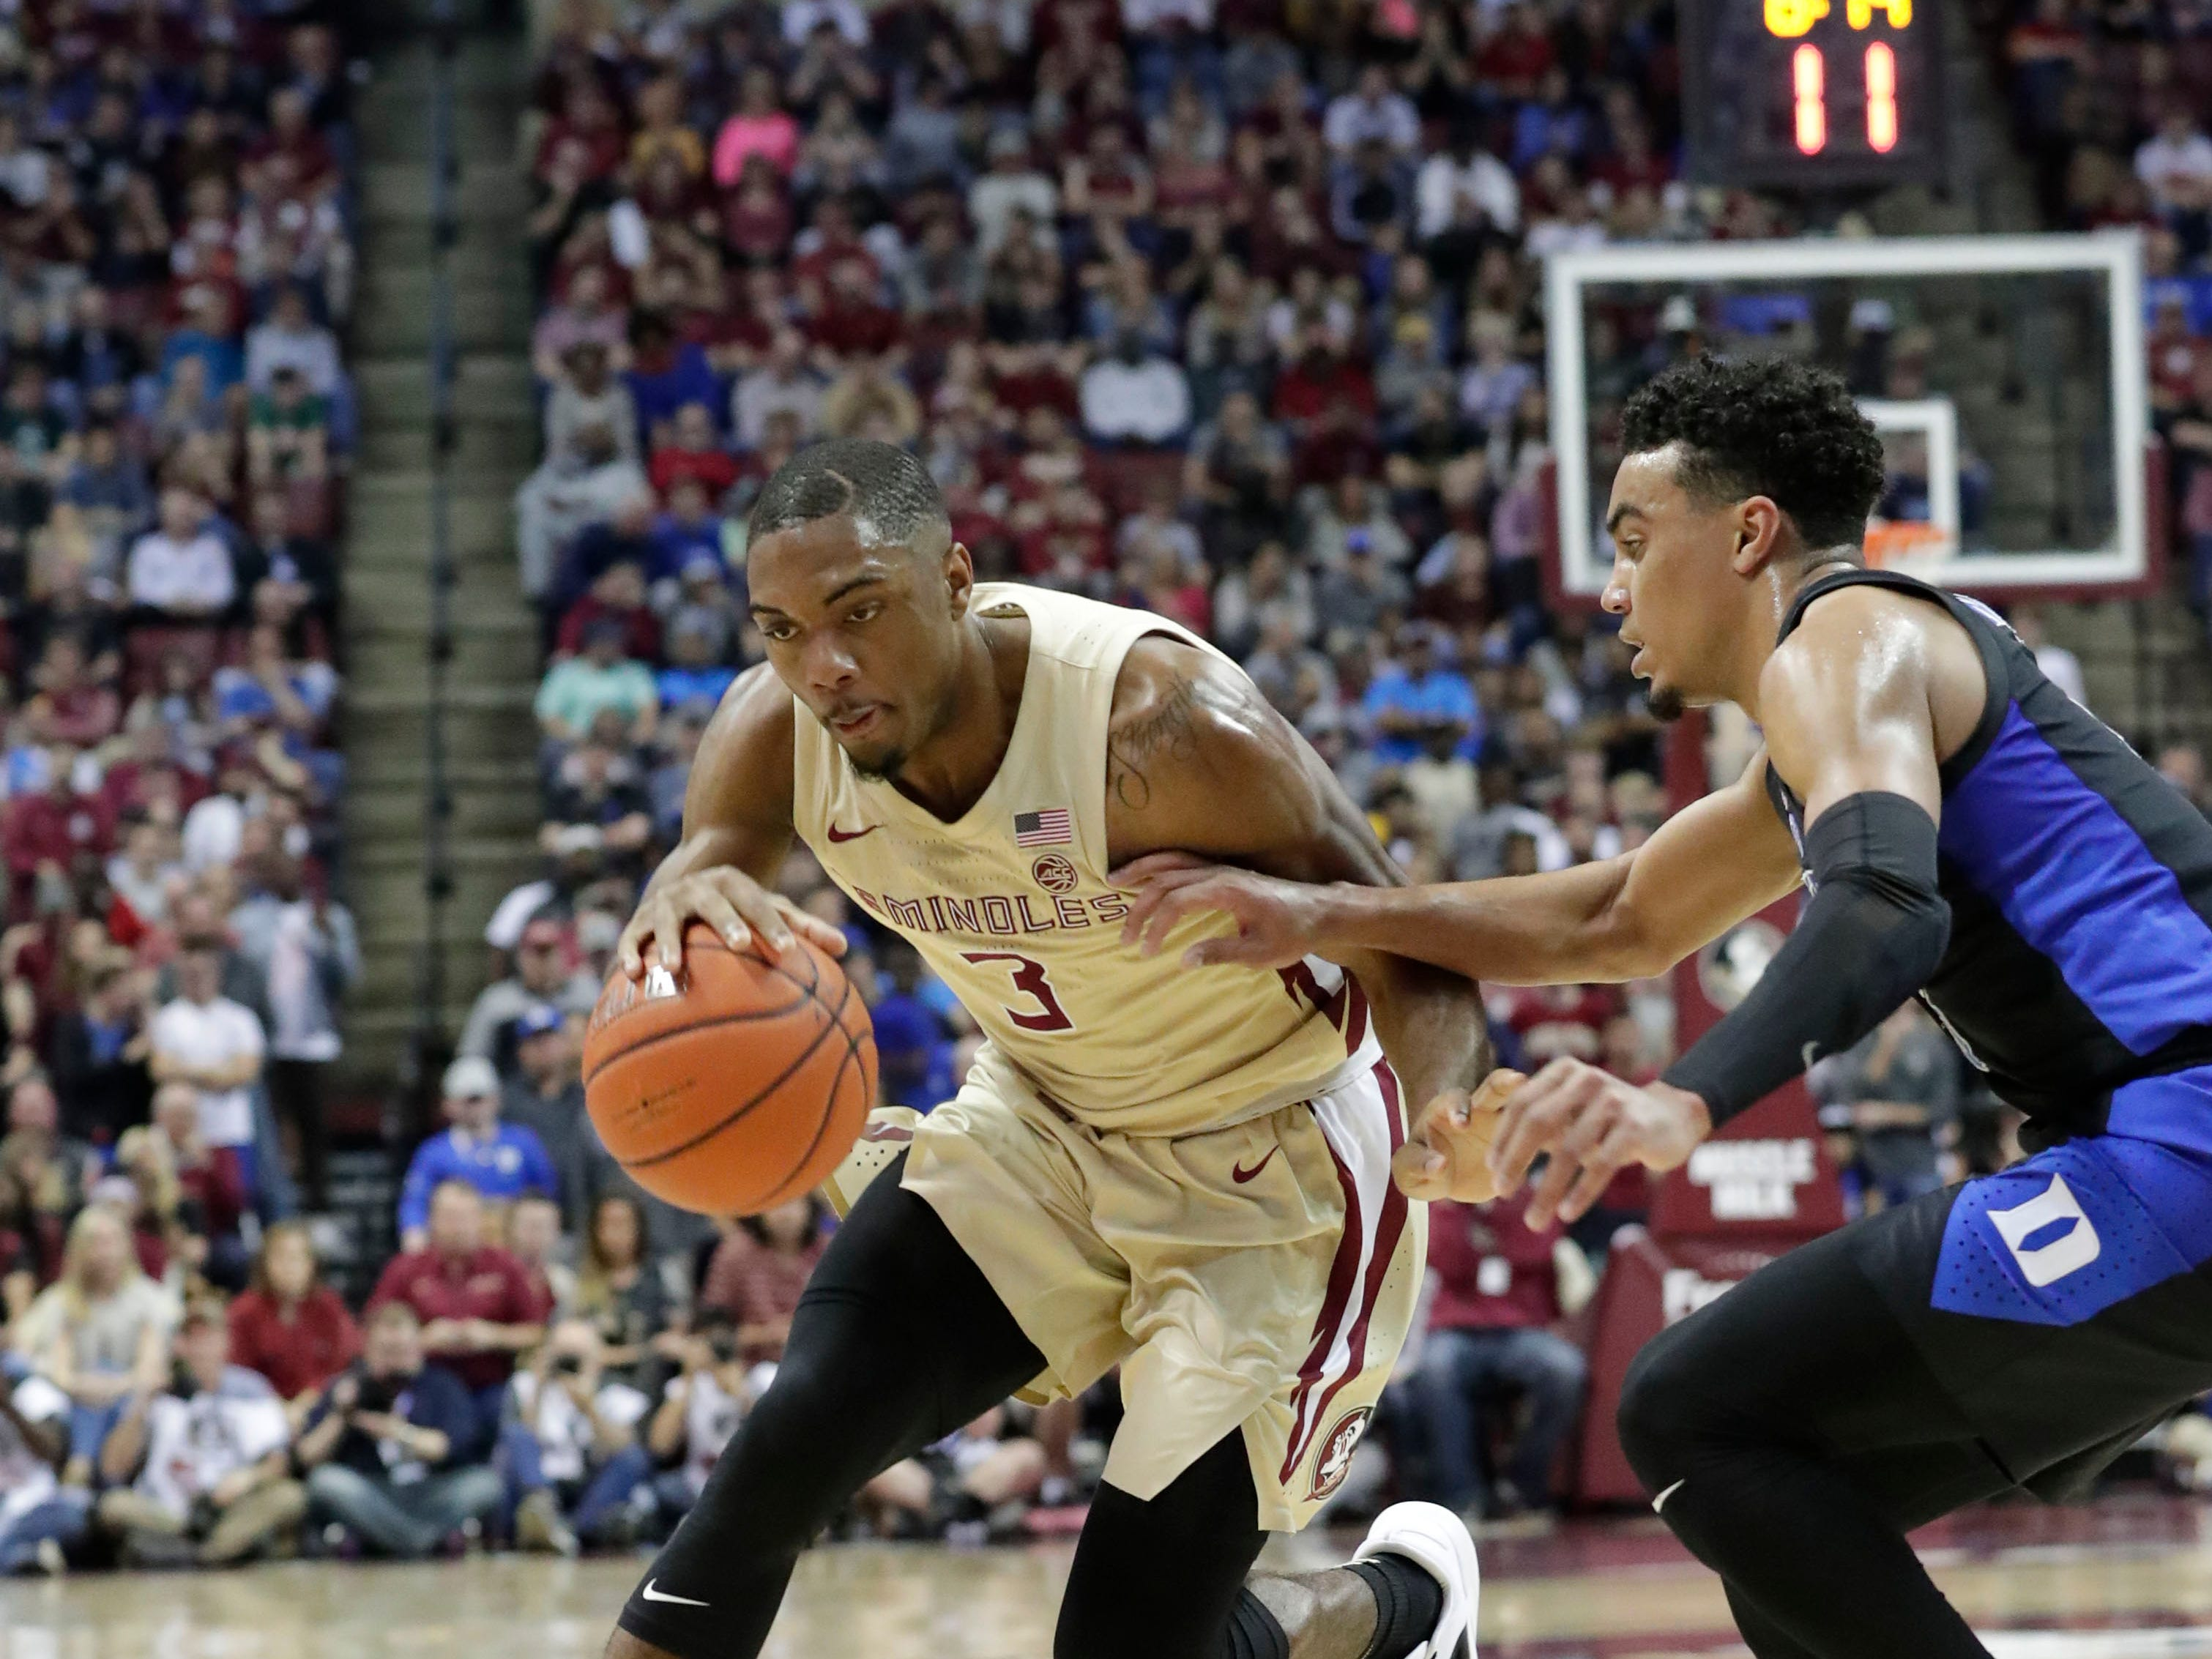 Florida State Seminoles guard Trent Forrest (3) drives the ball to the hoop. Ranked 13 in the ACC, the Florida State Seminoles host the number 1 team, the Duke Blue Devils, at the Tucker Civic Center, Saturday, Jan. 12, 2019.